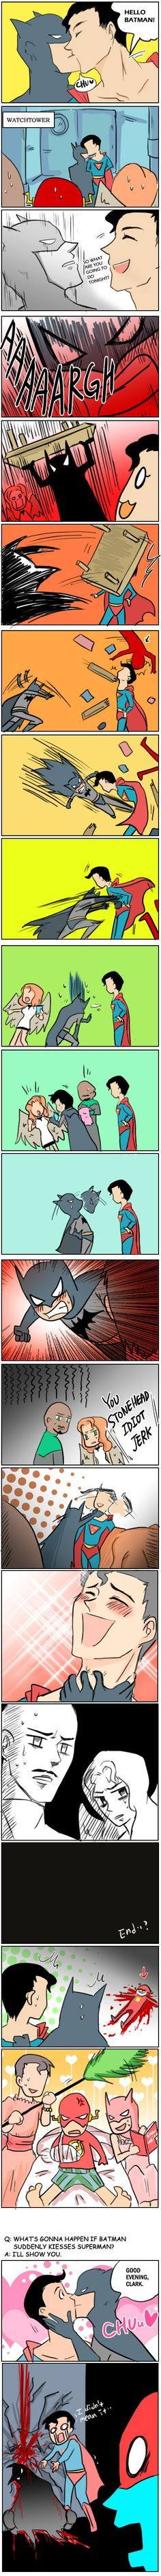 Batman and Superman Batman Meme, Superman X Batman, Damian Wayne, Avengers, Mini Comic, Superbat, Batman Family, Spideypool, Dc Heroes